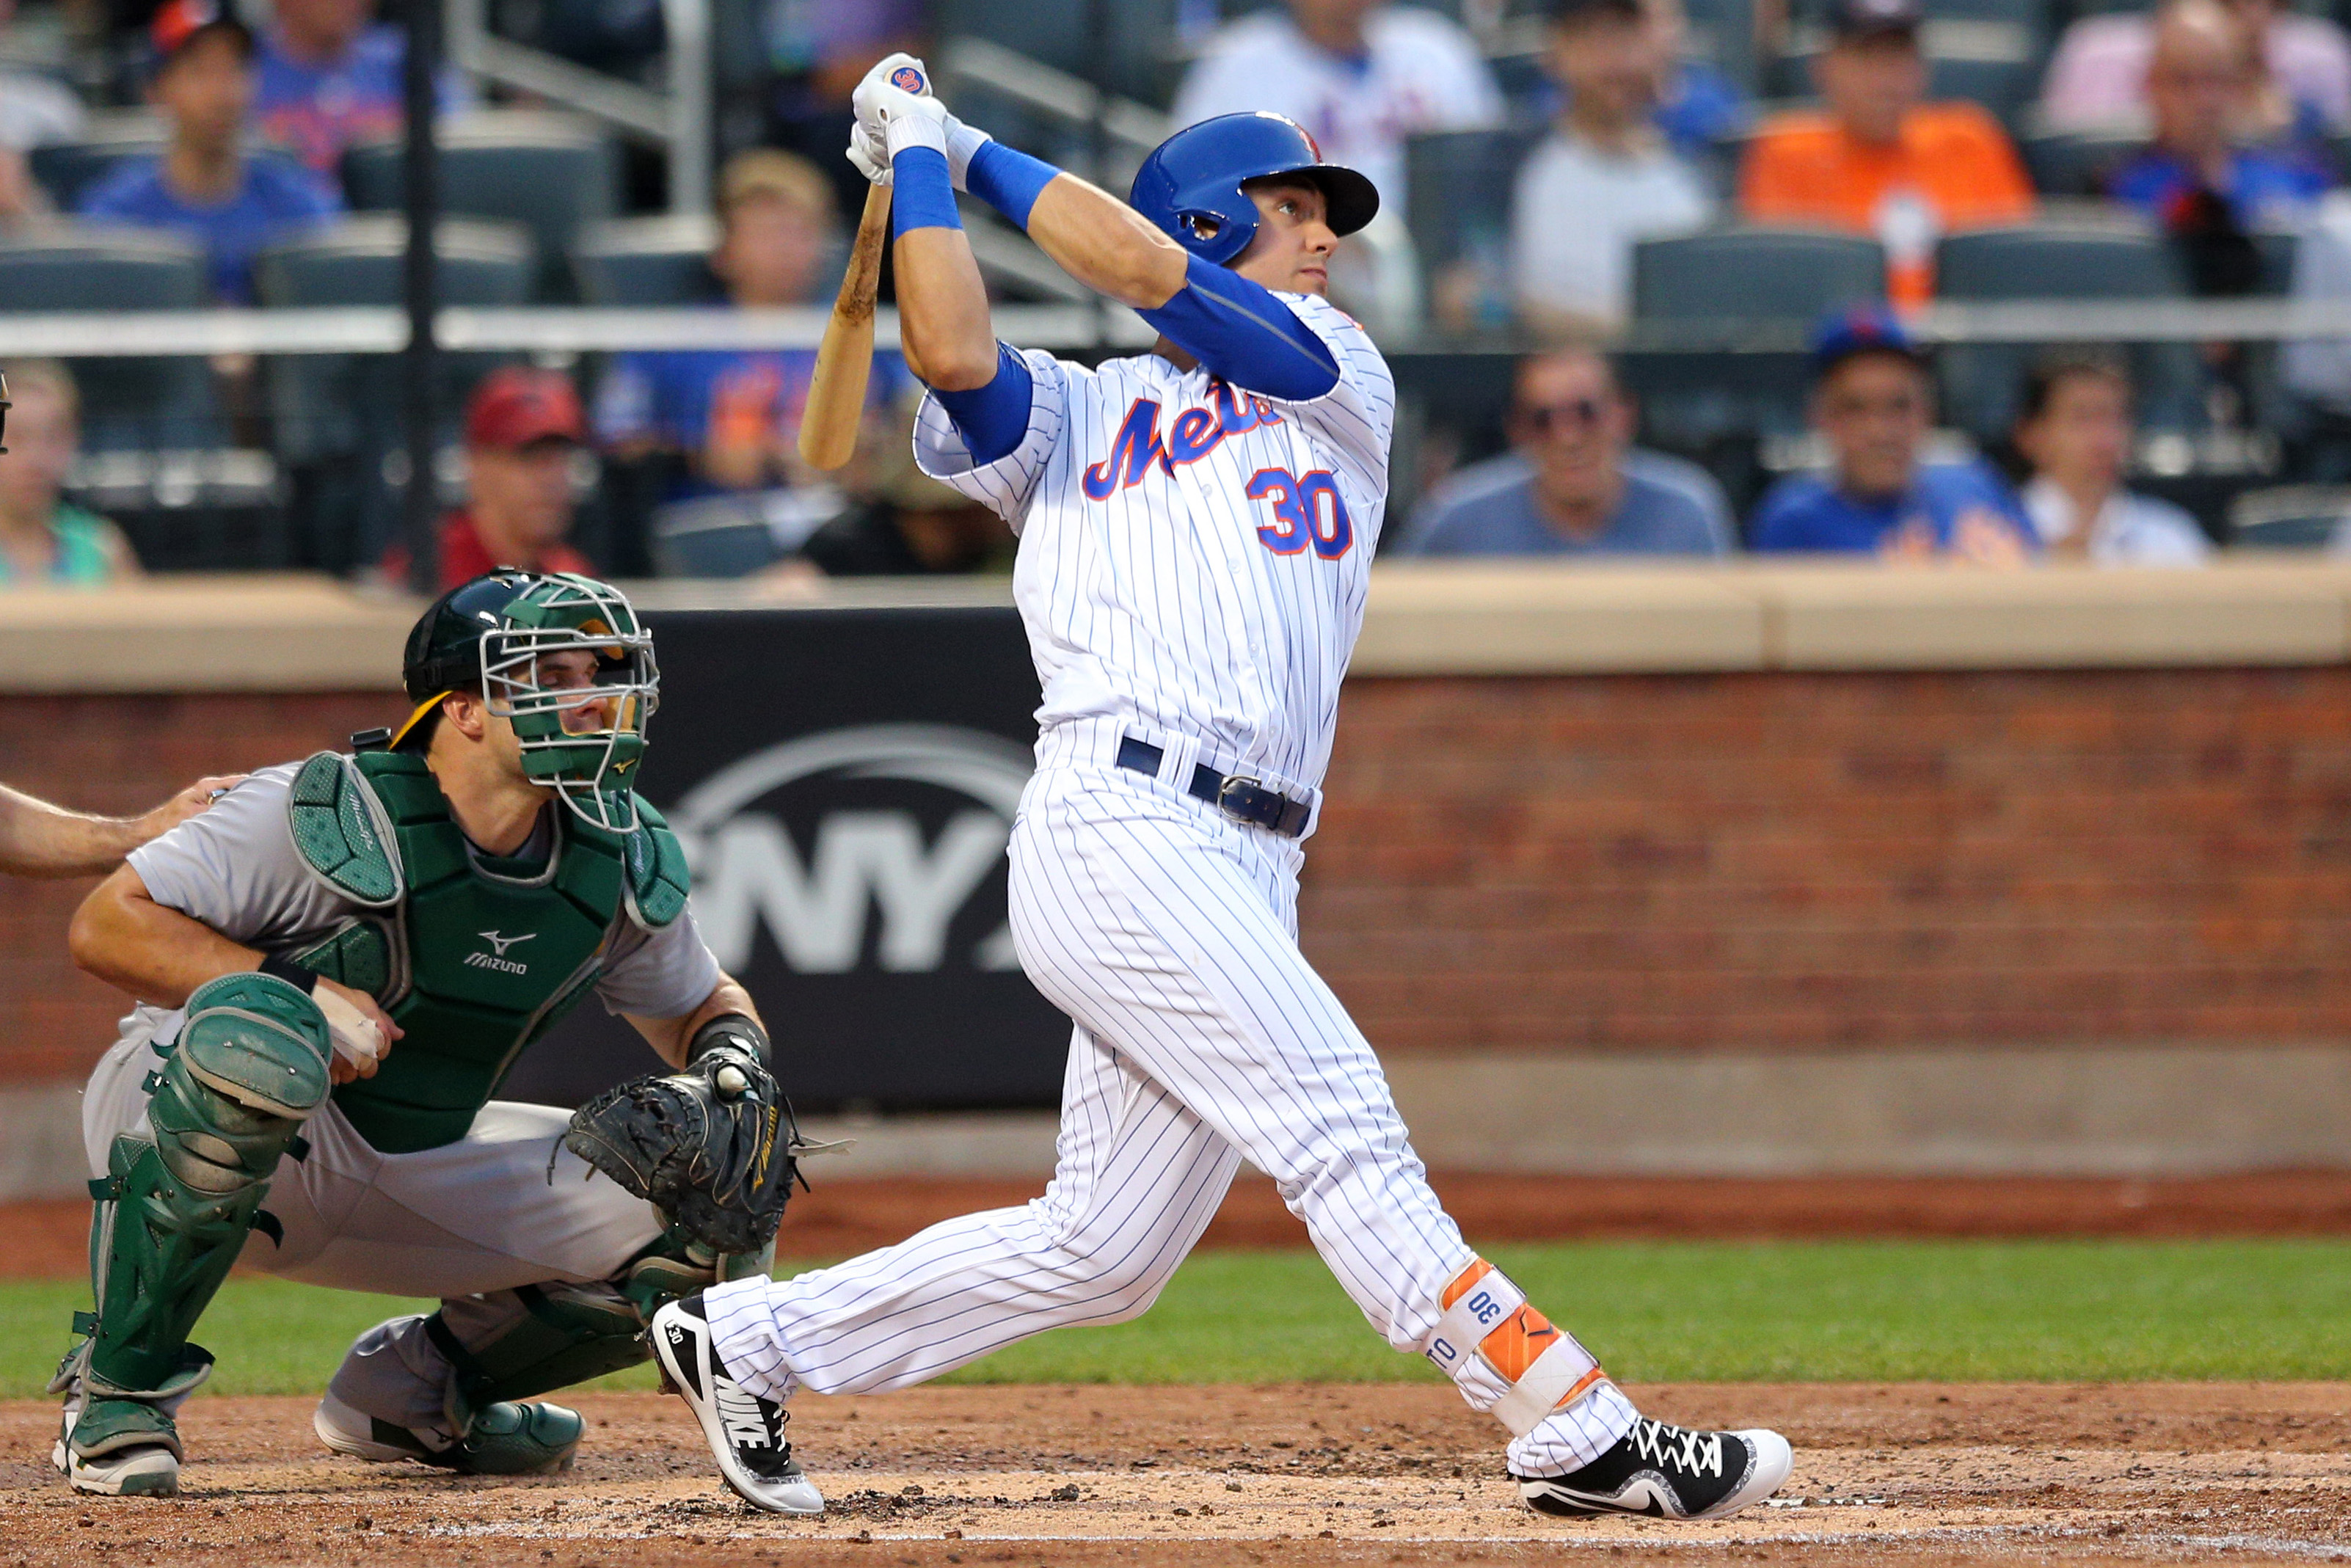 MLB: Oakland Athletics at New York Mets